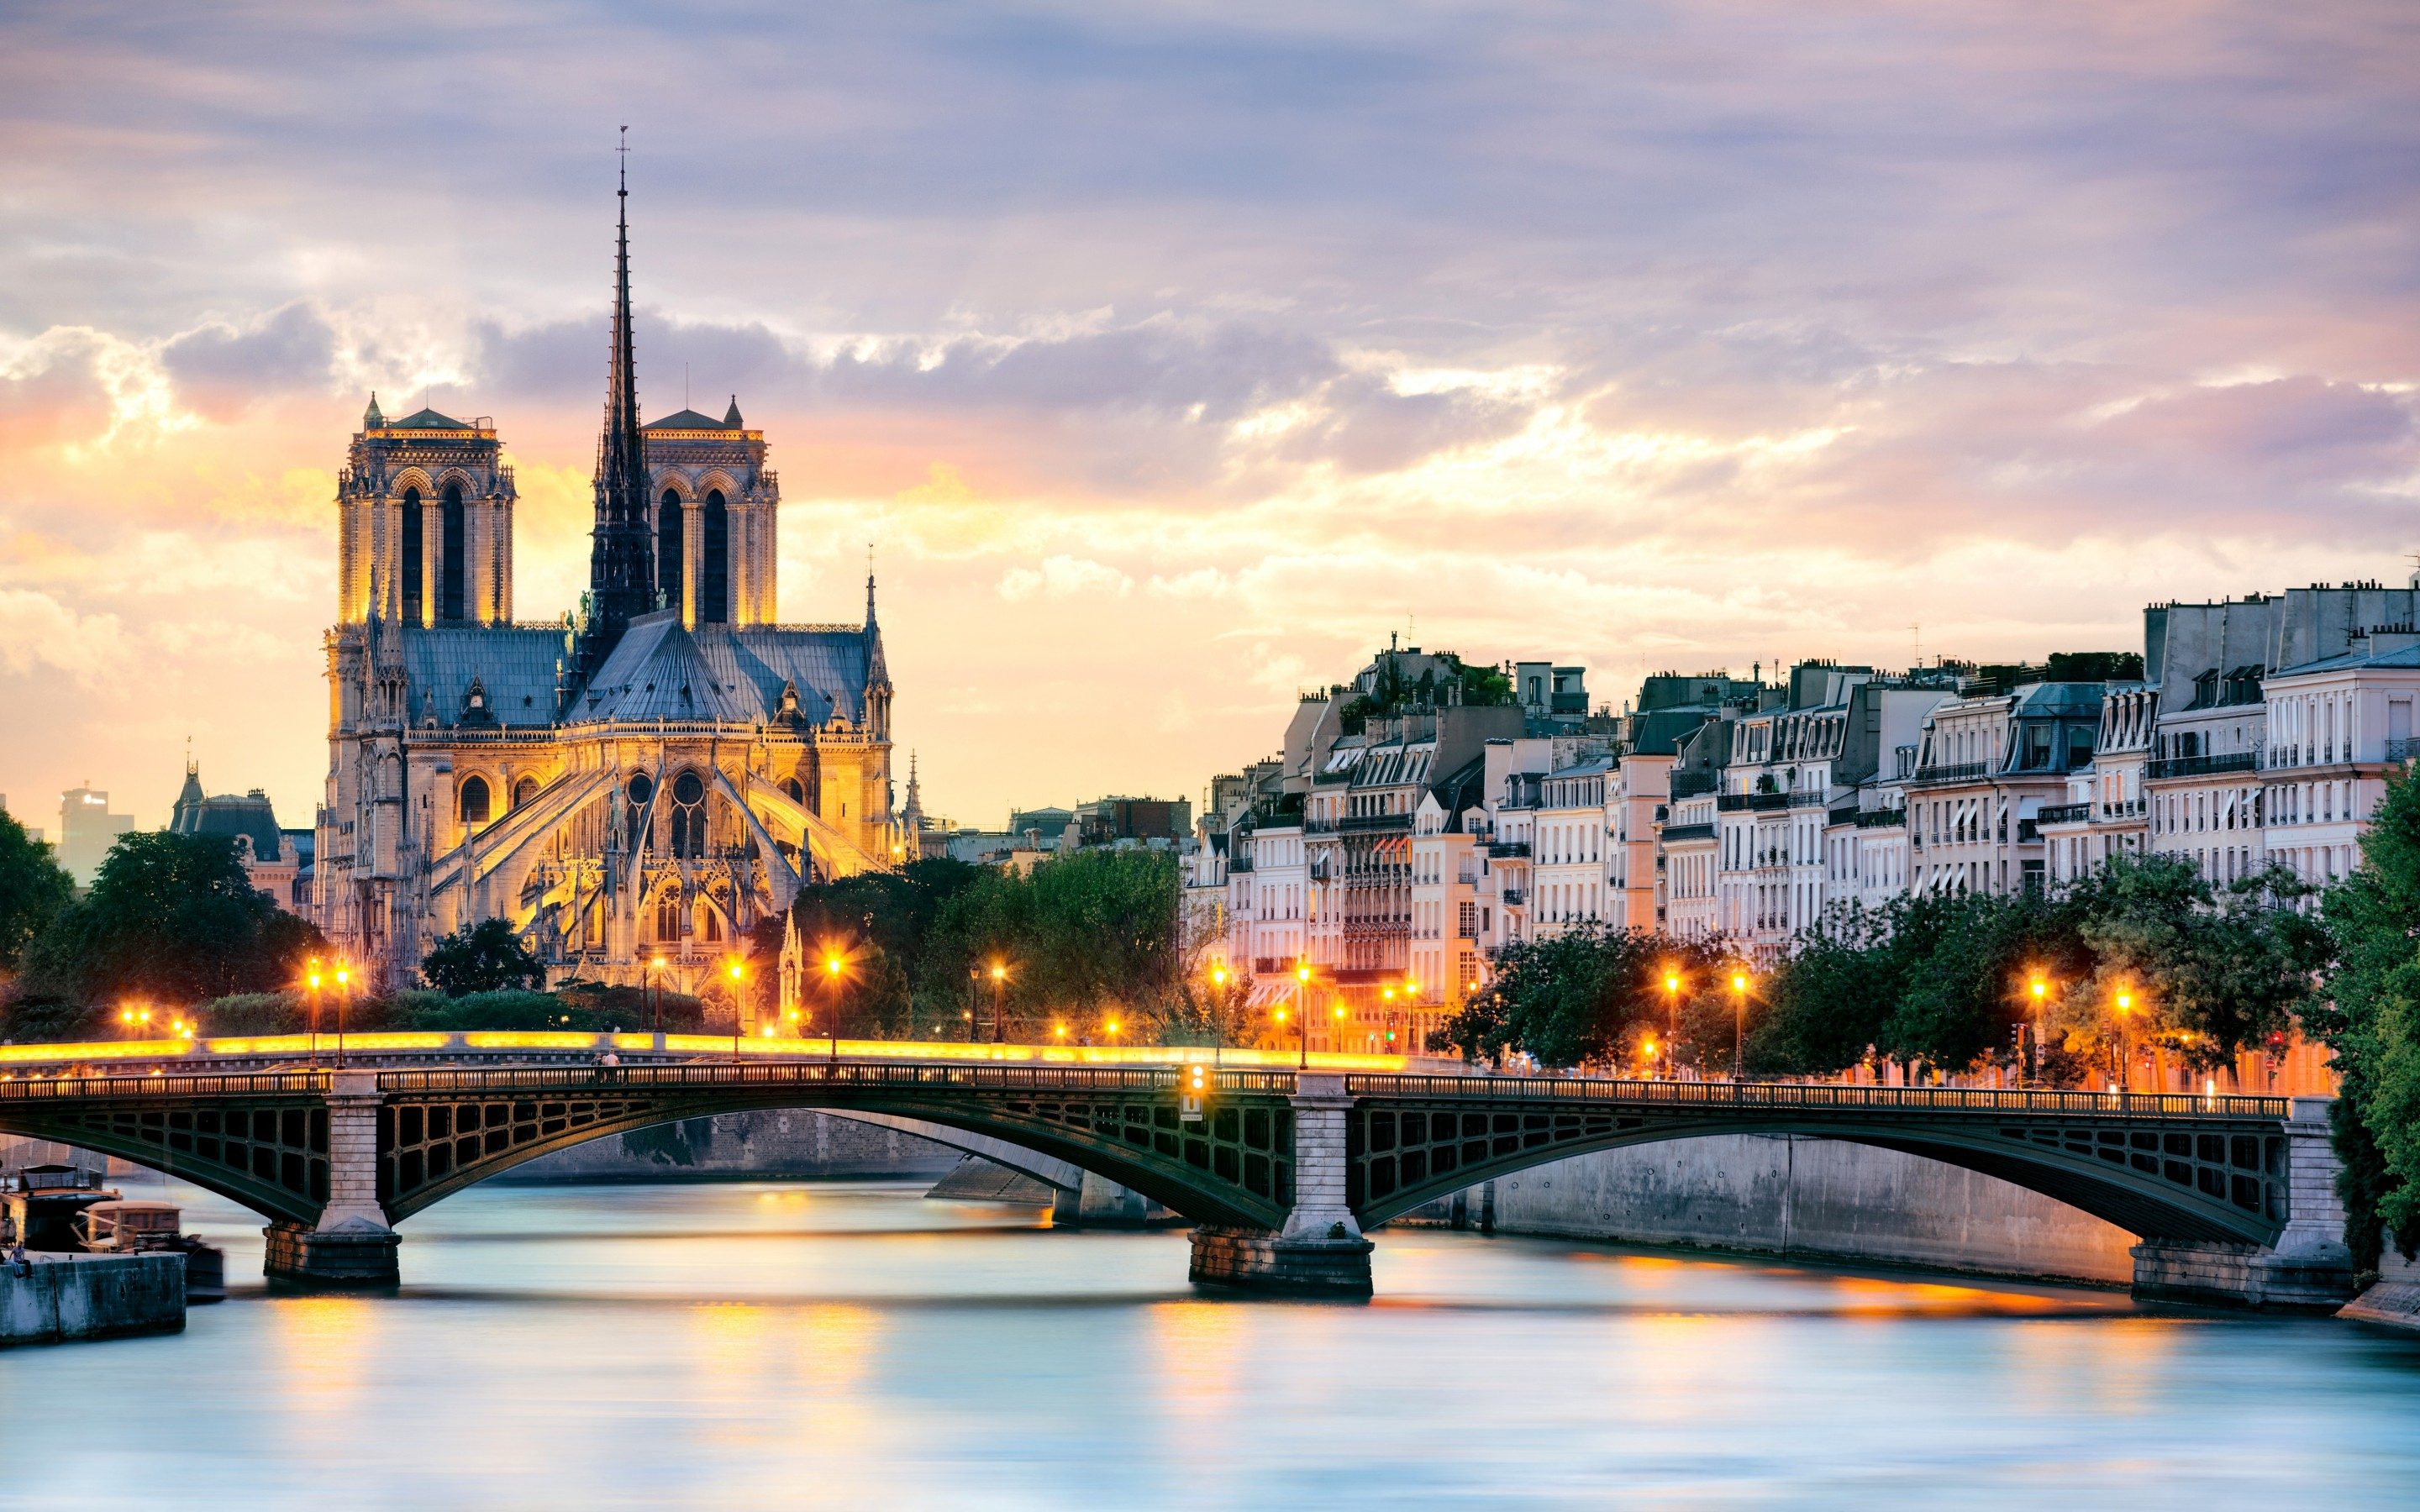 Notre Dame De Paris Wallpapers Pictures Images